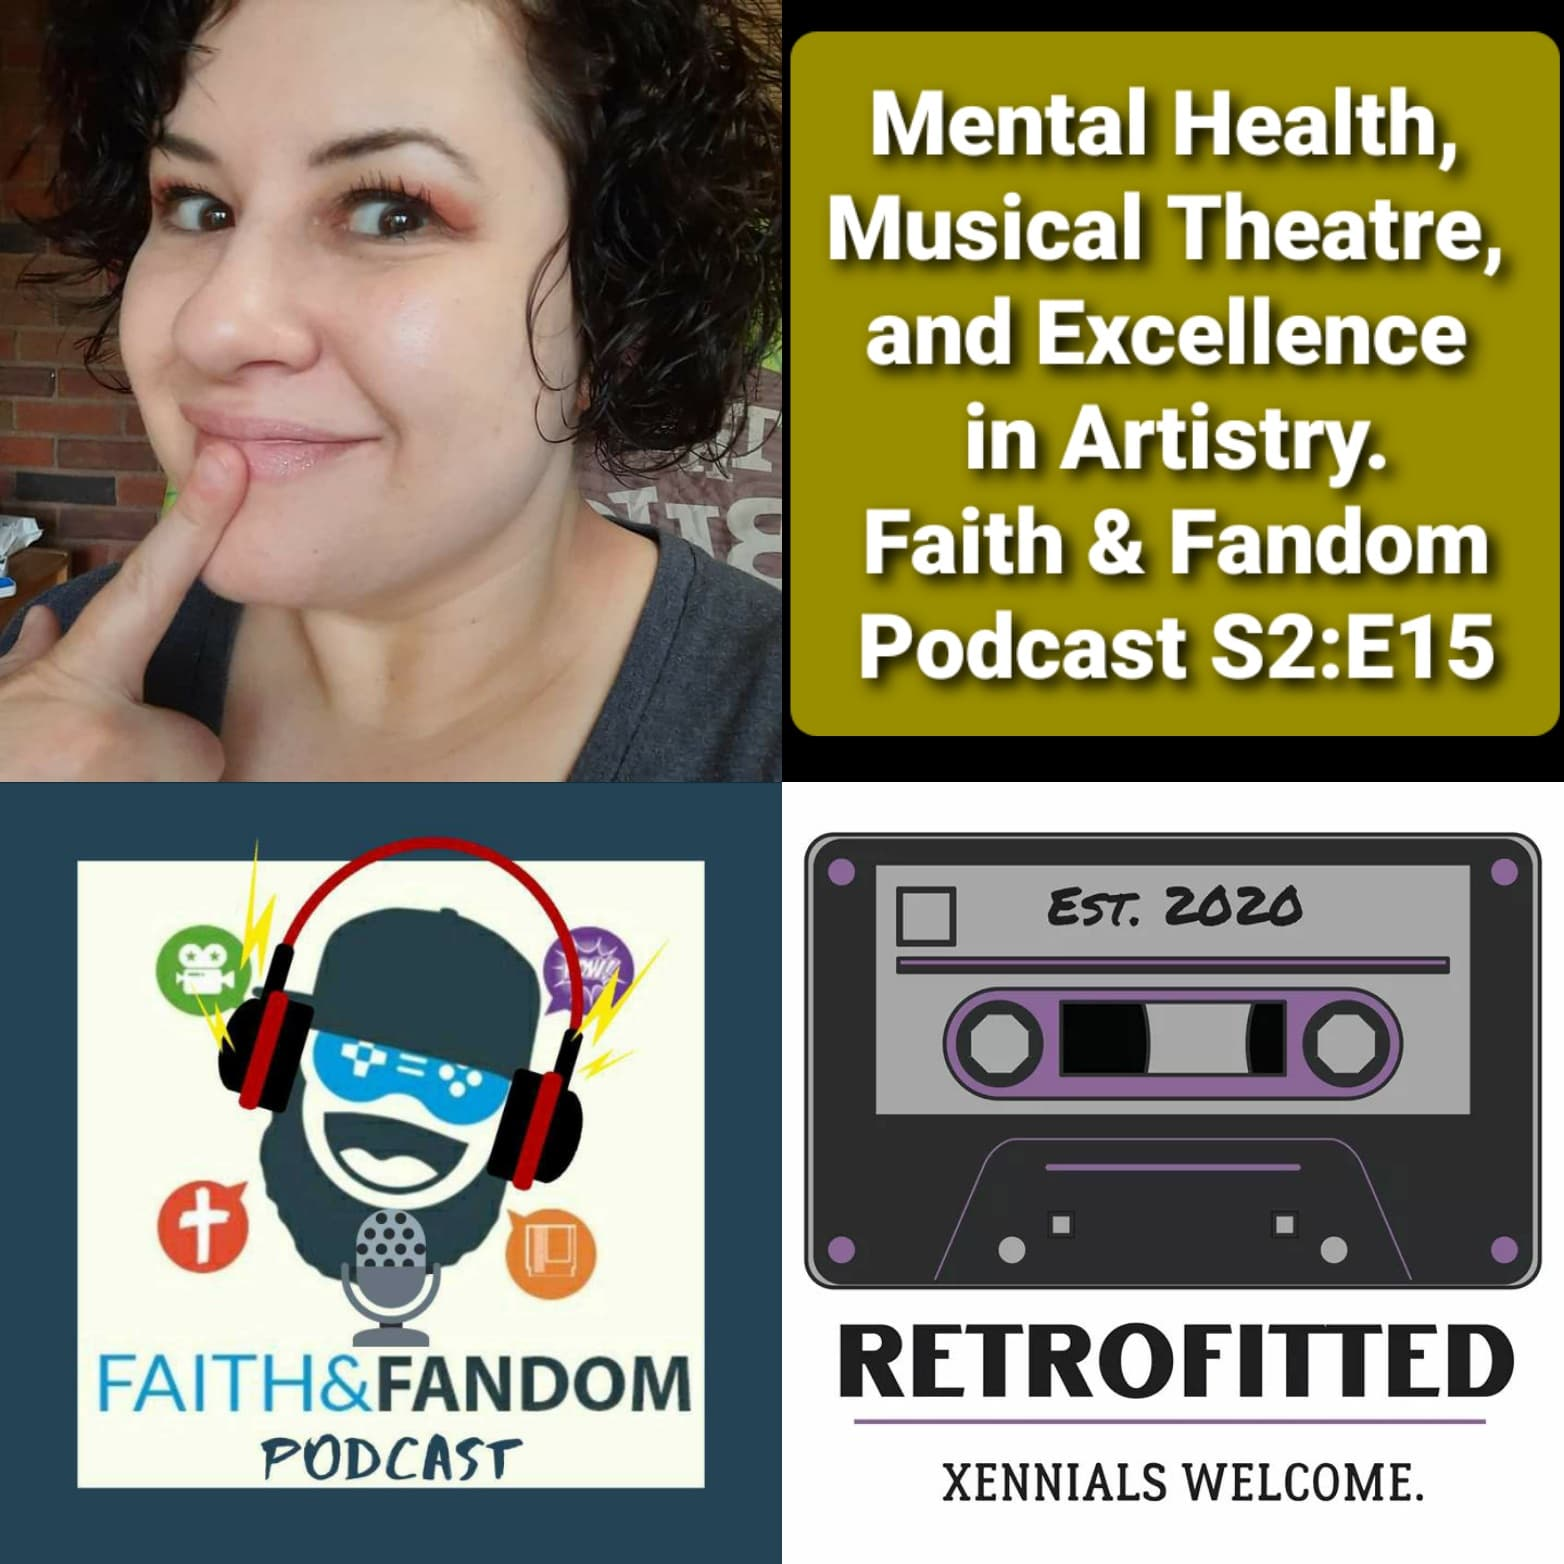 Mental Health, Musical Theatre, & Excellence in Artistry. Faith & Fandom Podcast S2:E15